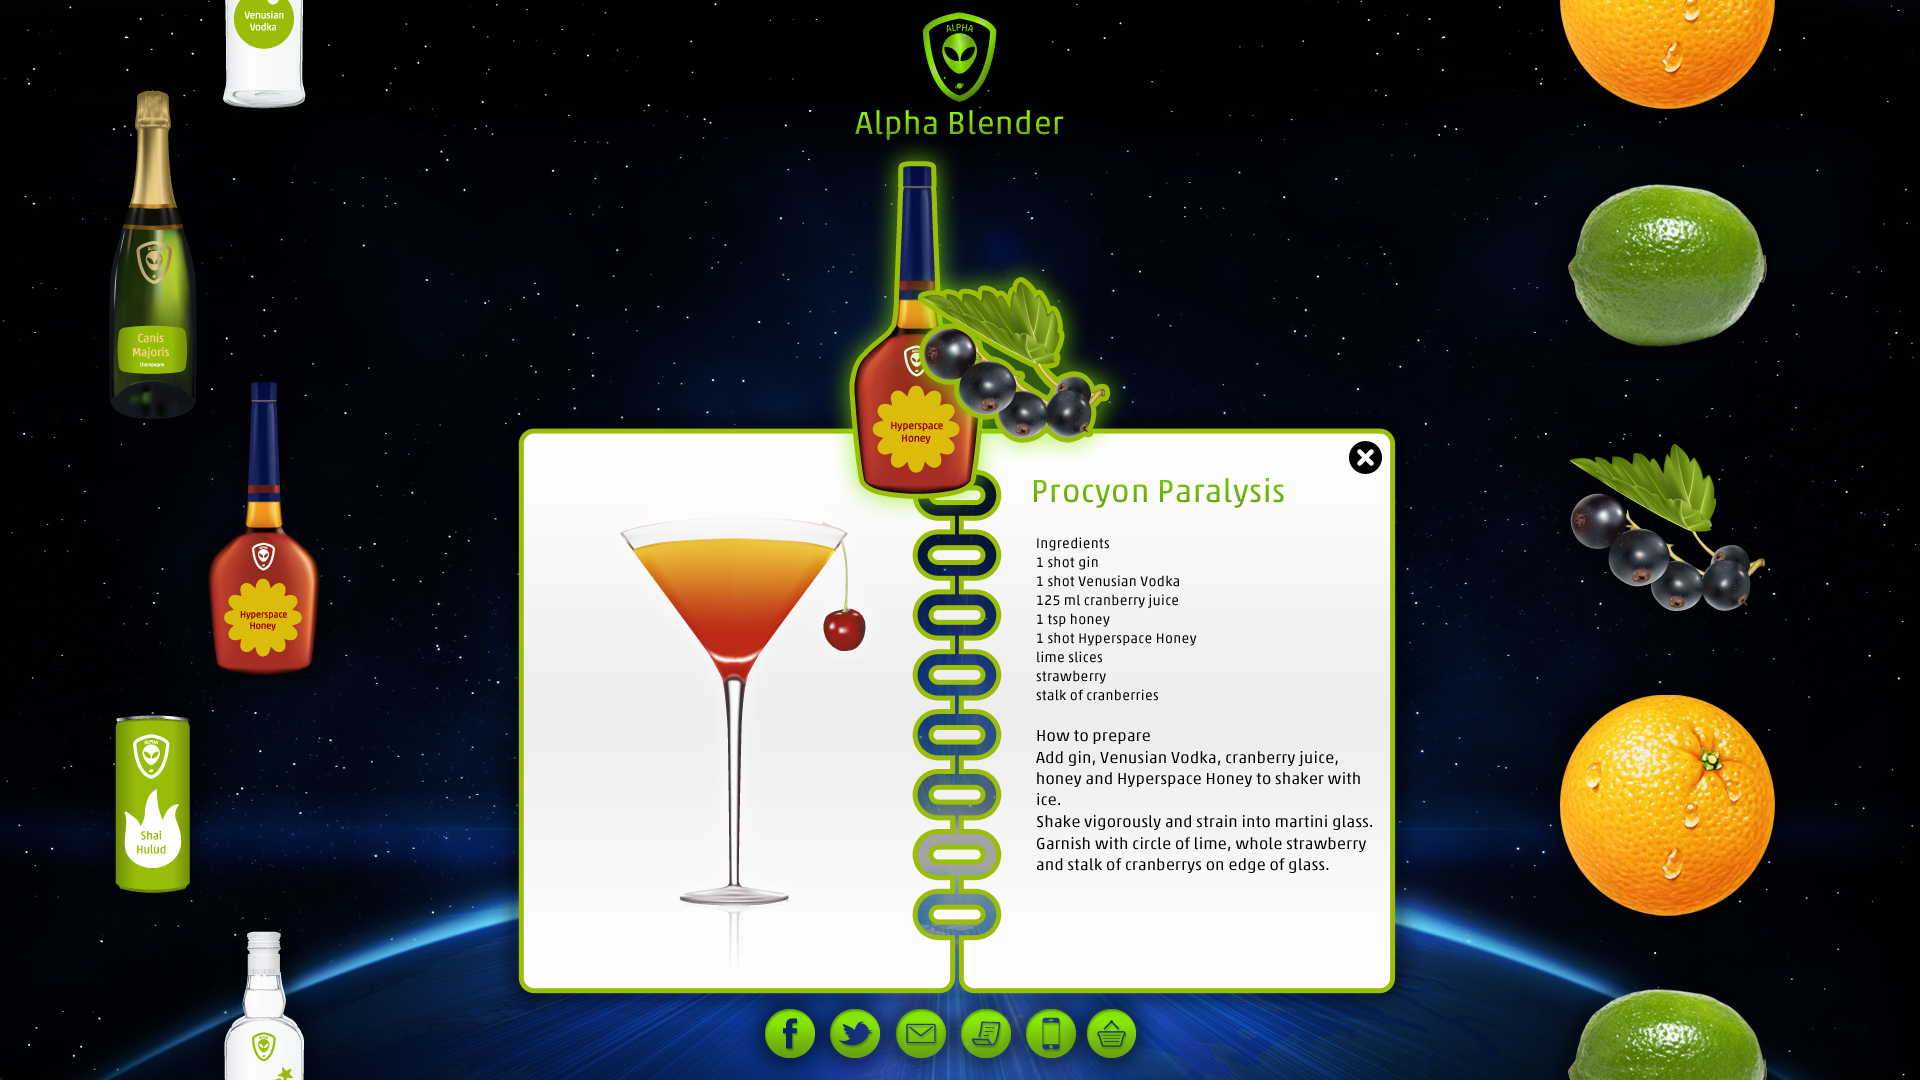 Alpha Alien Drinks App - The Blender